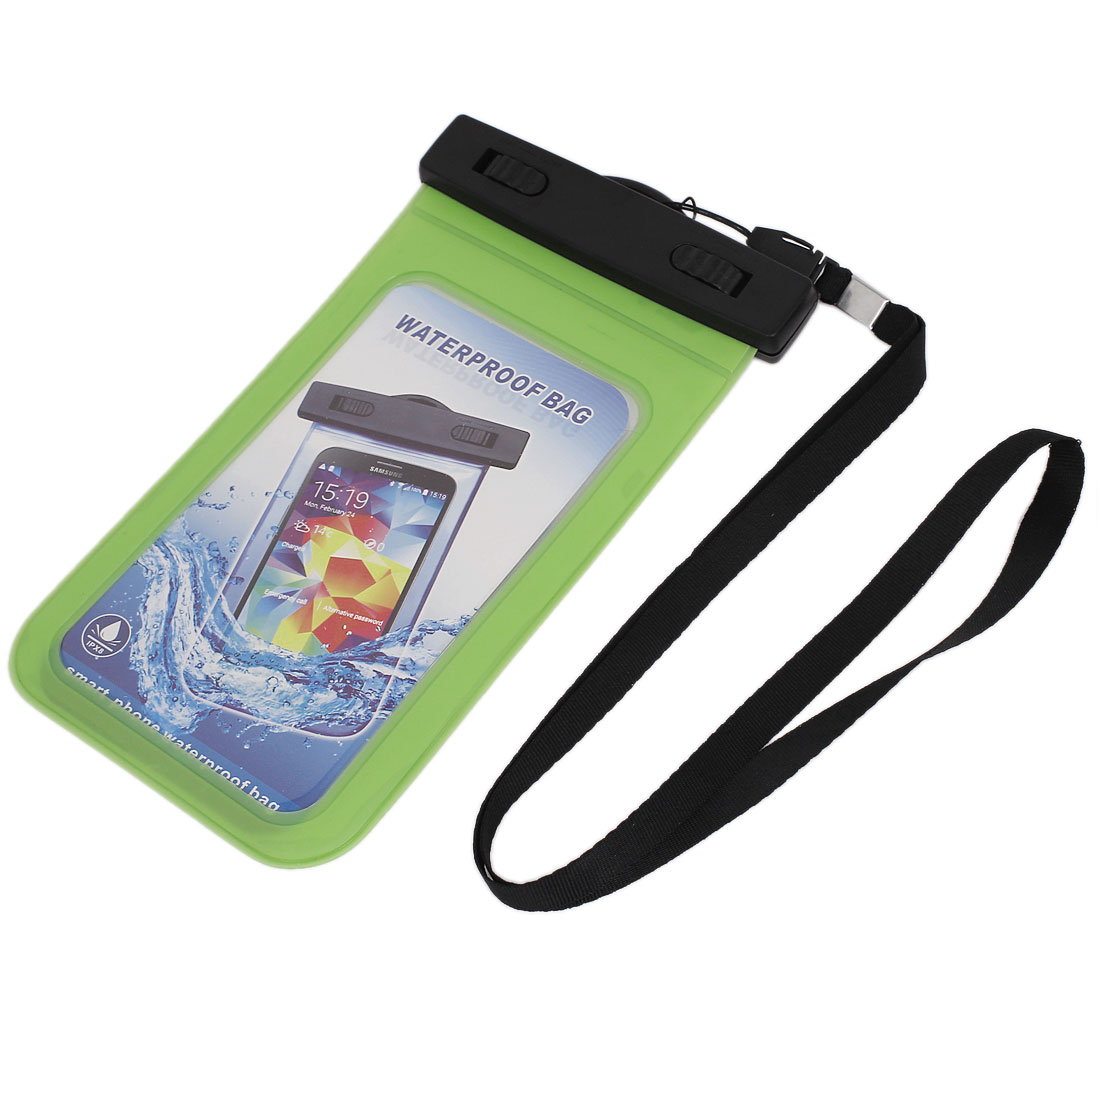 "Unique Bargains Waterproof Bag Holder Pouch Green for 5.5"" Mobile Phone w Neck Strap"